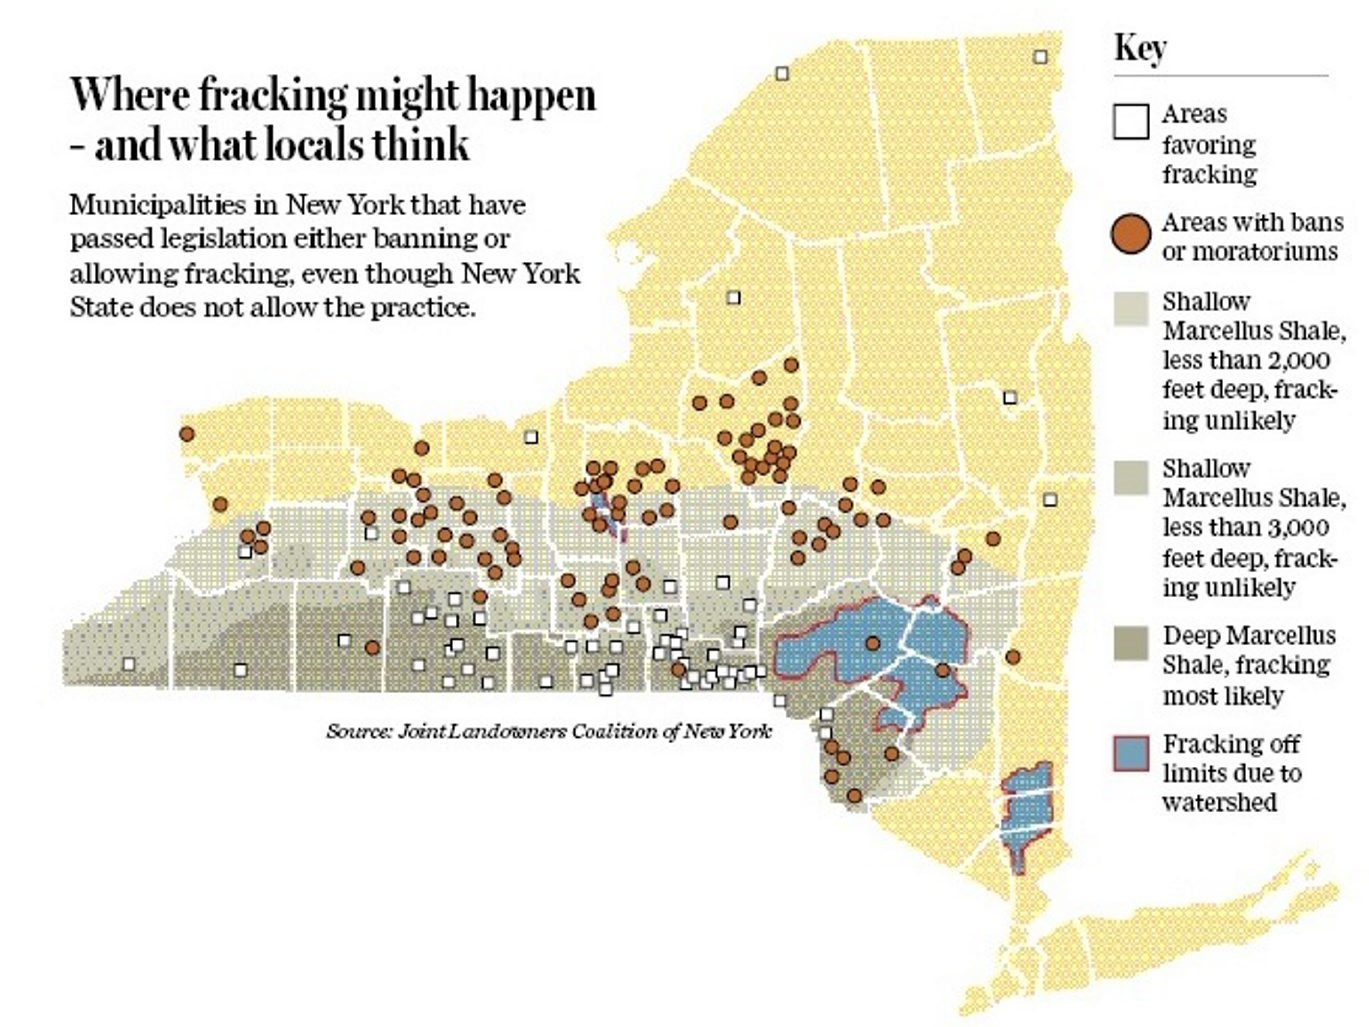 Map shows municipalities that have passed legislation either banning or allowing fracking along with areas of deep Marcellus Shale that are most likely to be of interest for fracking.